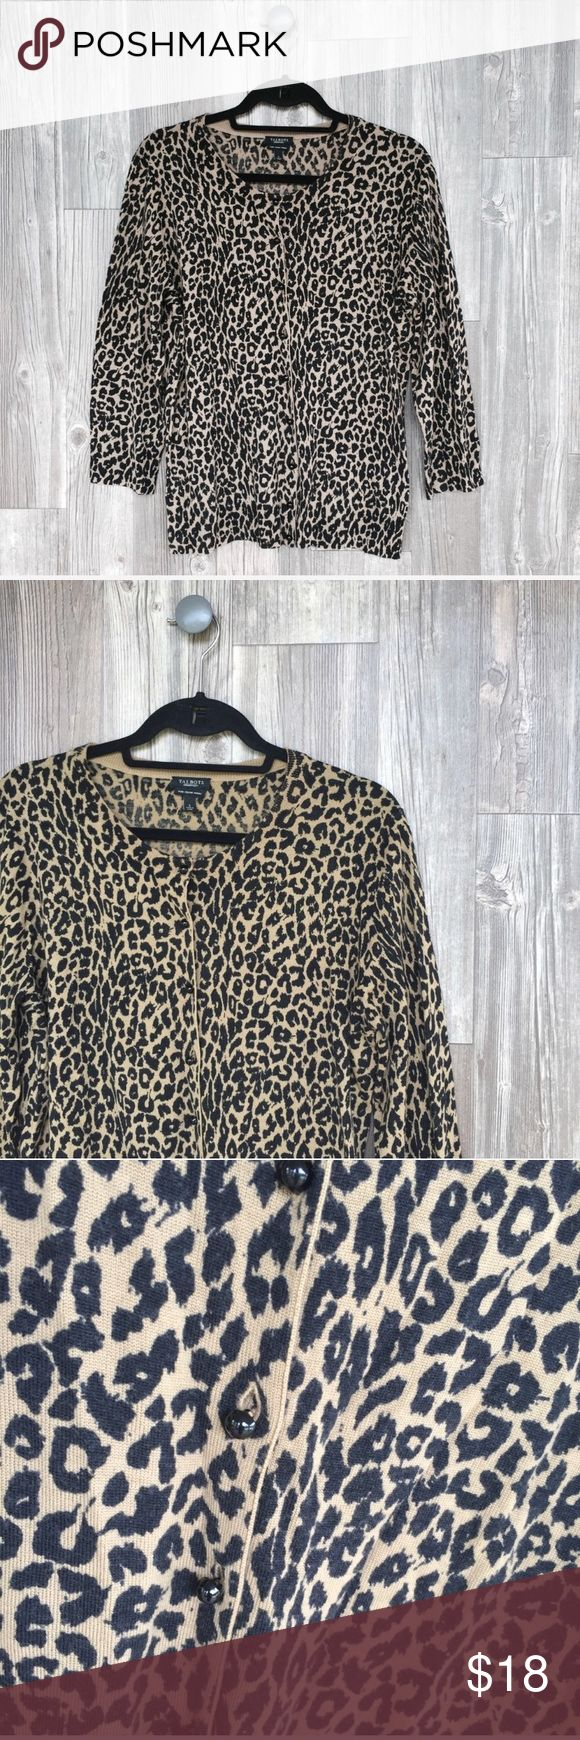 Talbots Merino Wool Cheetah Cardigan Talbots Genuine Italian Merino Wool Cheetah Cardigan! Great condition. Size large! Such a great light weight Cardigan. Talbots Sweaters Cardigans